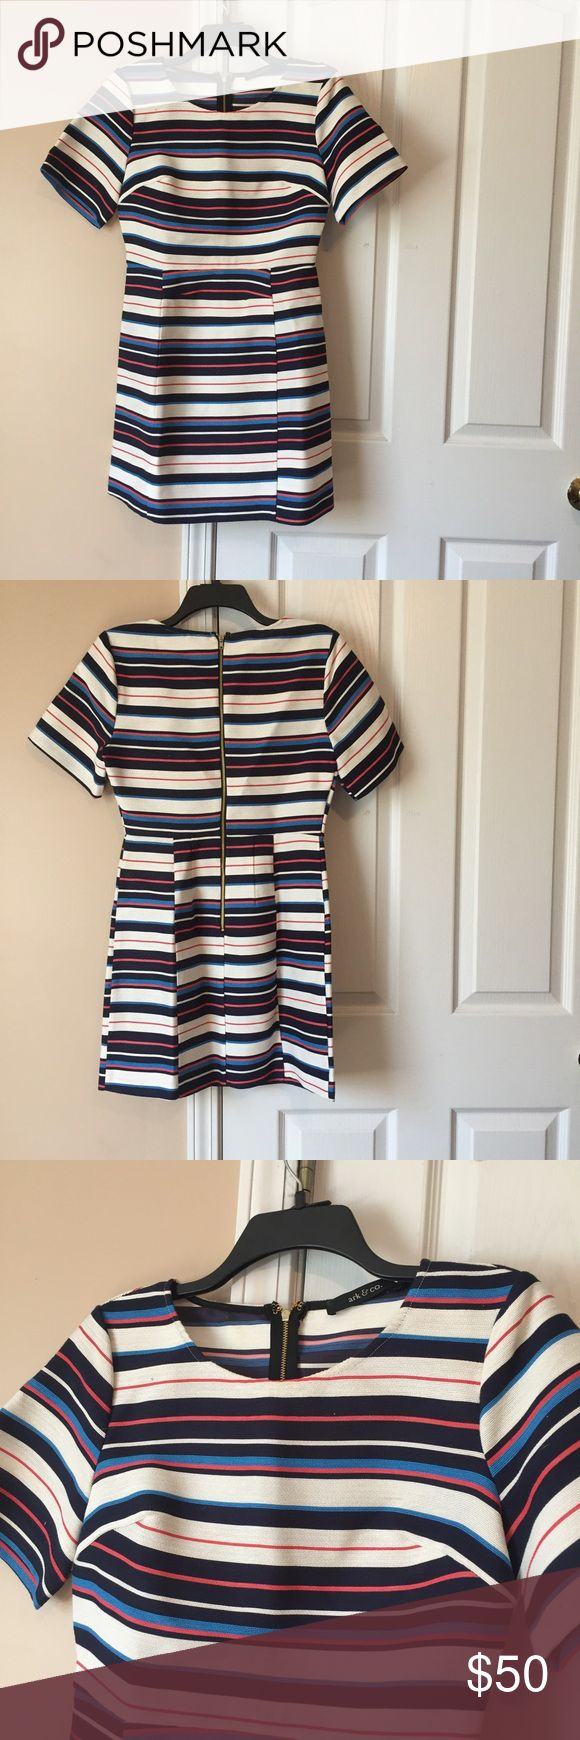 Free People Dress NOT FREE PEOPLE boutique dress, worn only once, very very pretty fit and flare style! Super cute for church or a business style outfit Free People Dresses Mini